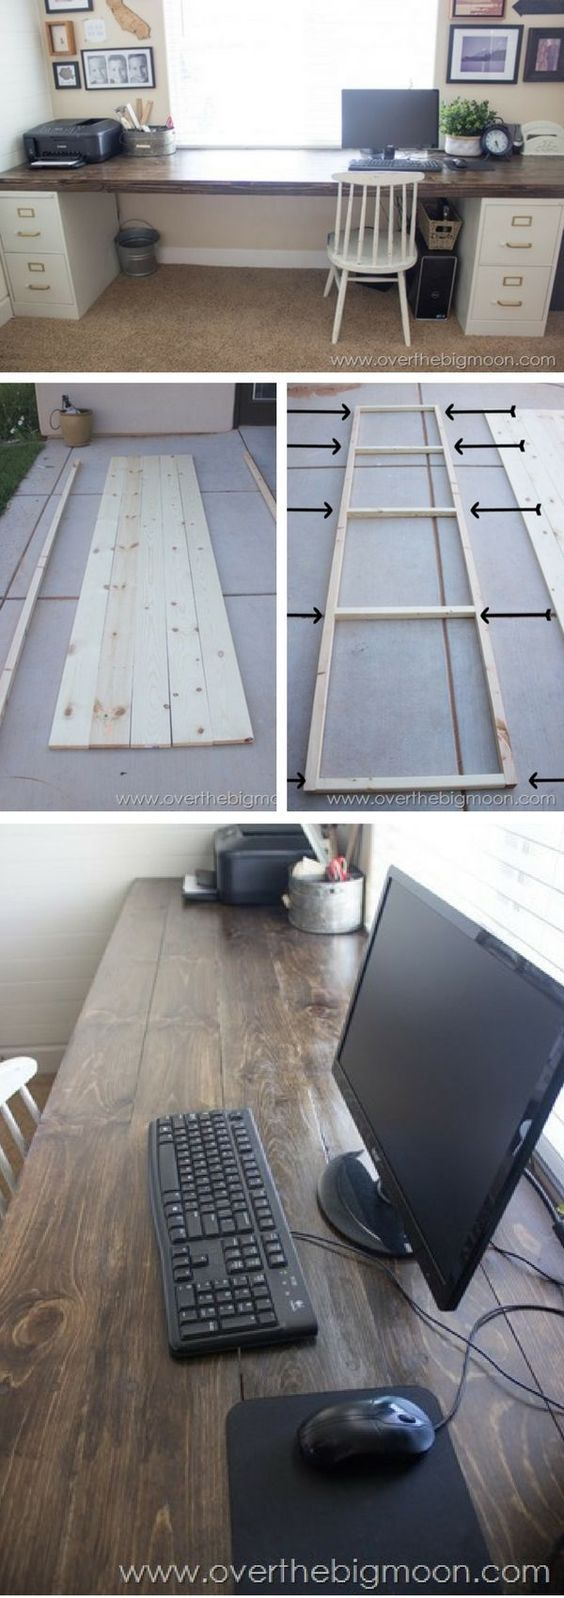 22 DIY desk examples - Check out the tutorial how to build a DIY desk from file cabinets and wood planks @istandarddesign